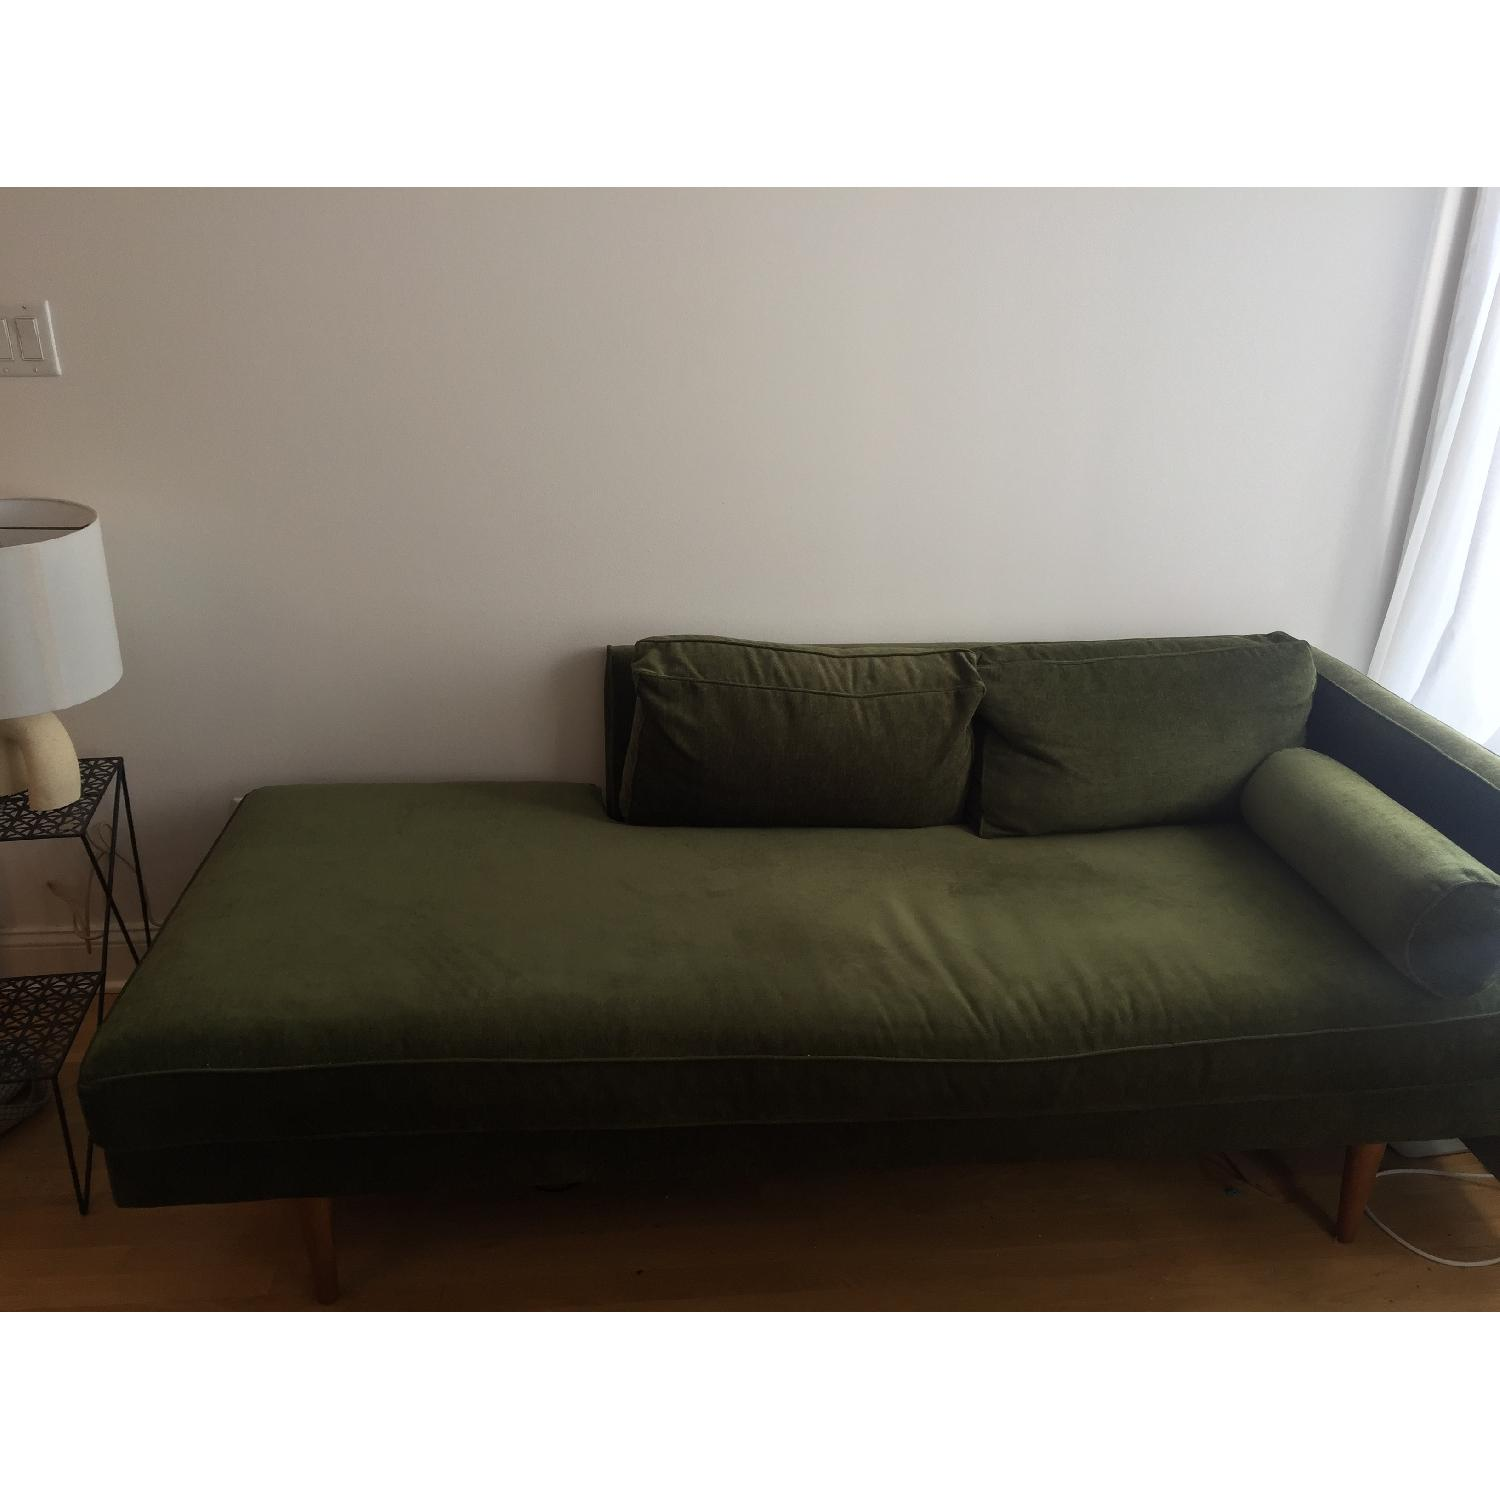 West Elm Mid Century Chaise in Olive Green - image-1